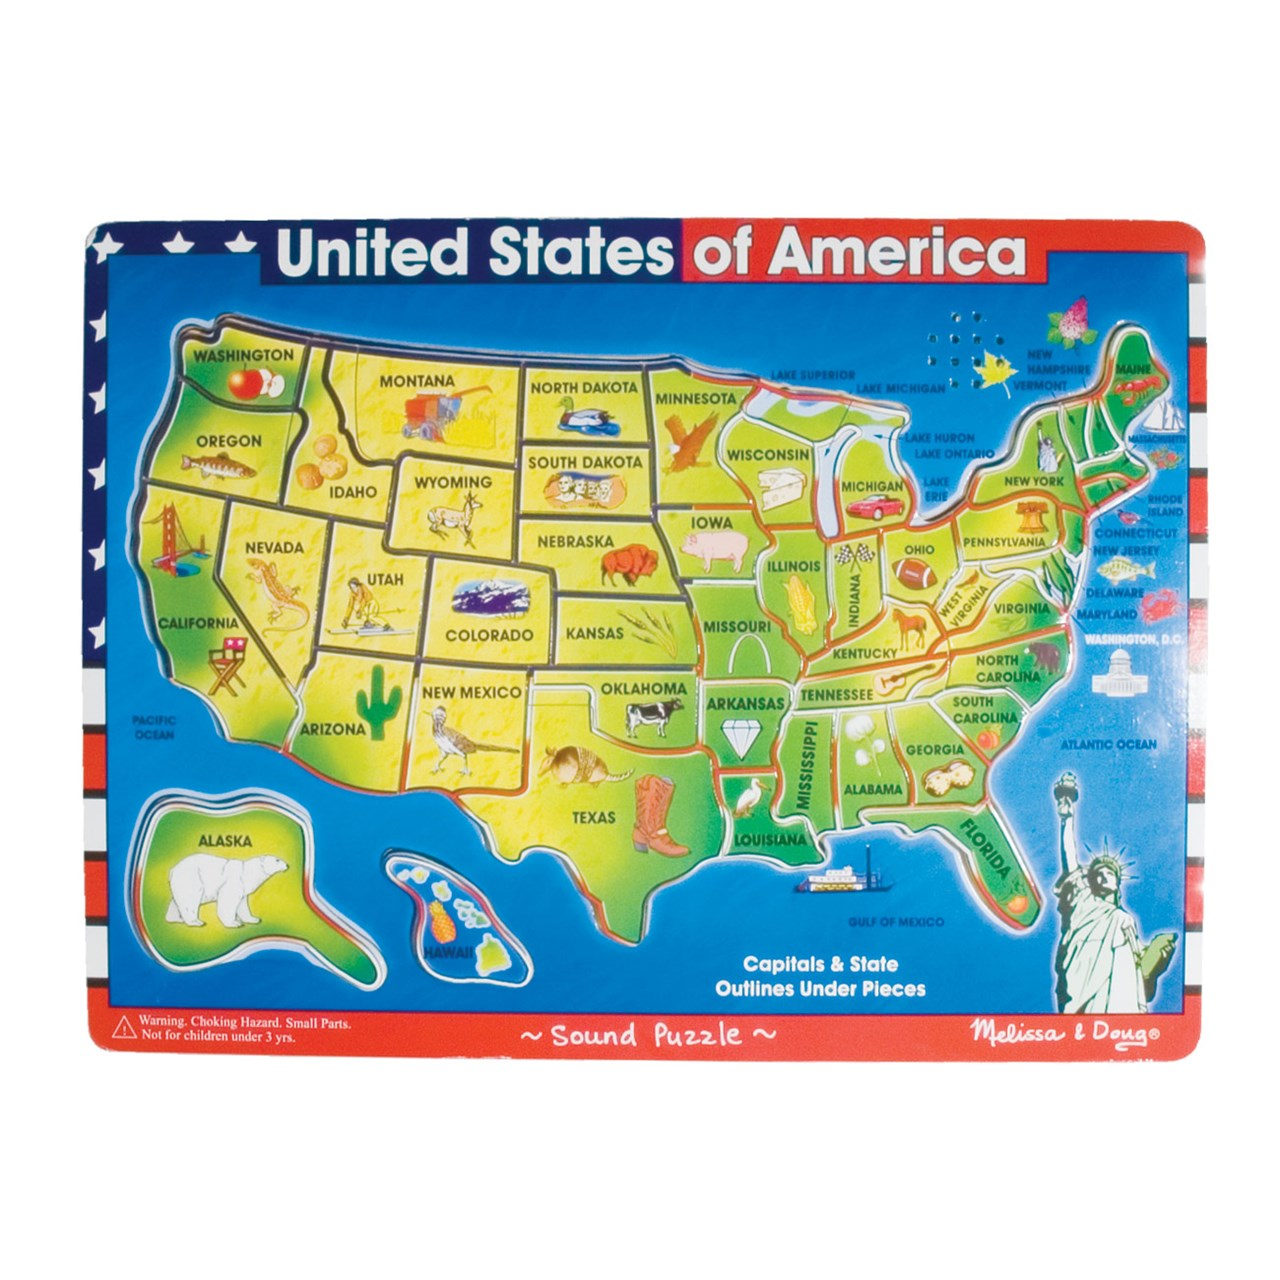 Sound Puzzle- Talking U.S.A. Map on usa home, my little pony puzzle games, usa jersey, louisiana games, colonial america games, new mexico games, usa 50 states, new york games, usa thanksgiving, statue of liberty games, florida games, usa outline maps, usa state nickname, usa puzzle, animals games, dinosaurs games,